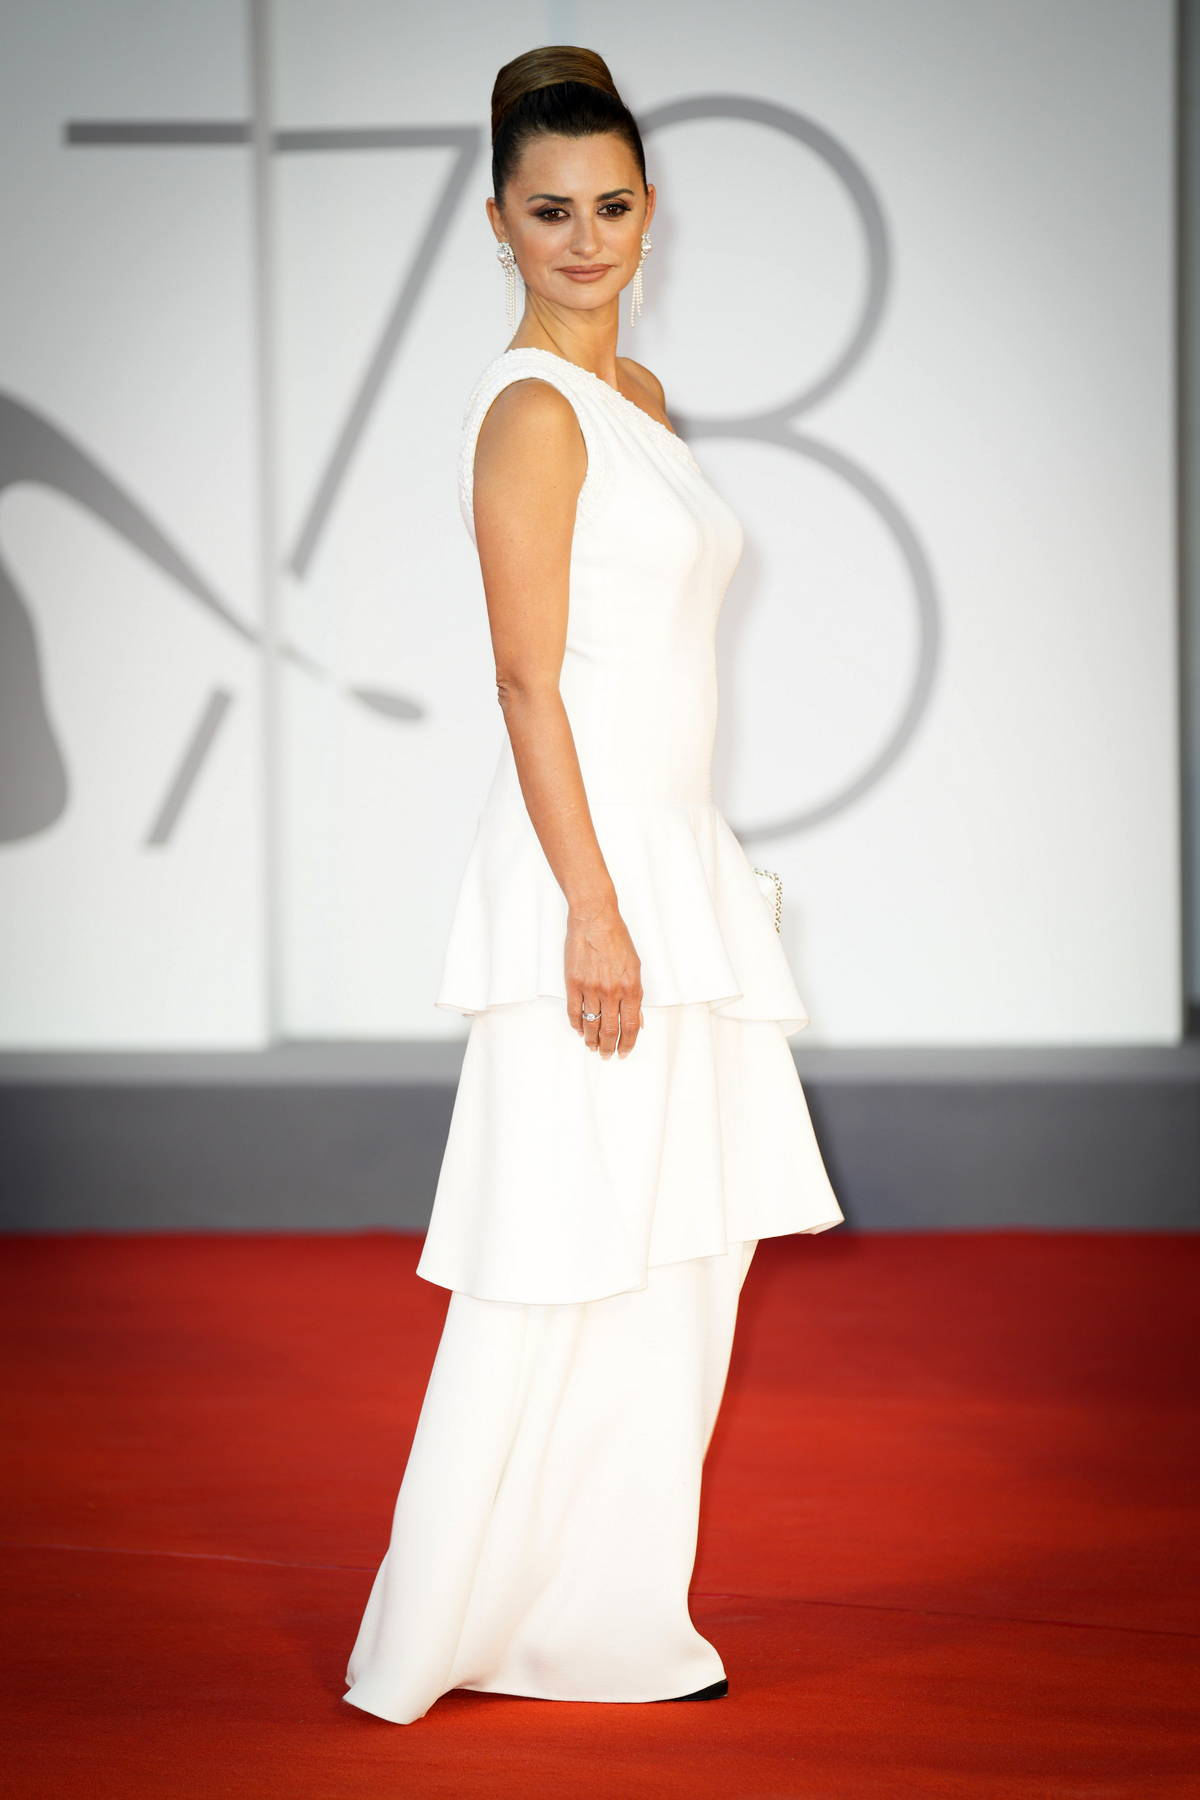 Penelope Cruz attends the Premiere of 'Competencia Oficial' during the 78th Venice International Film Festival in Venice, Italy